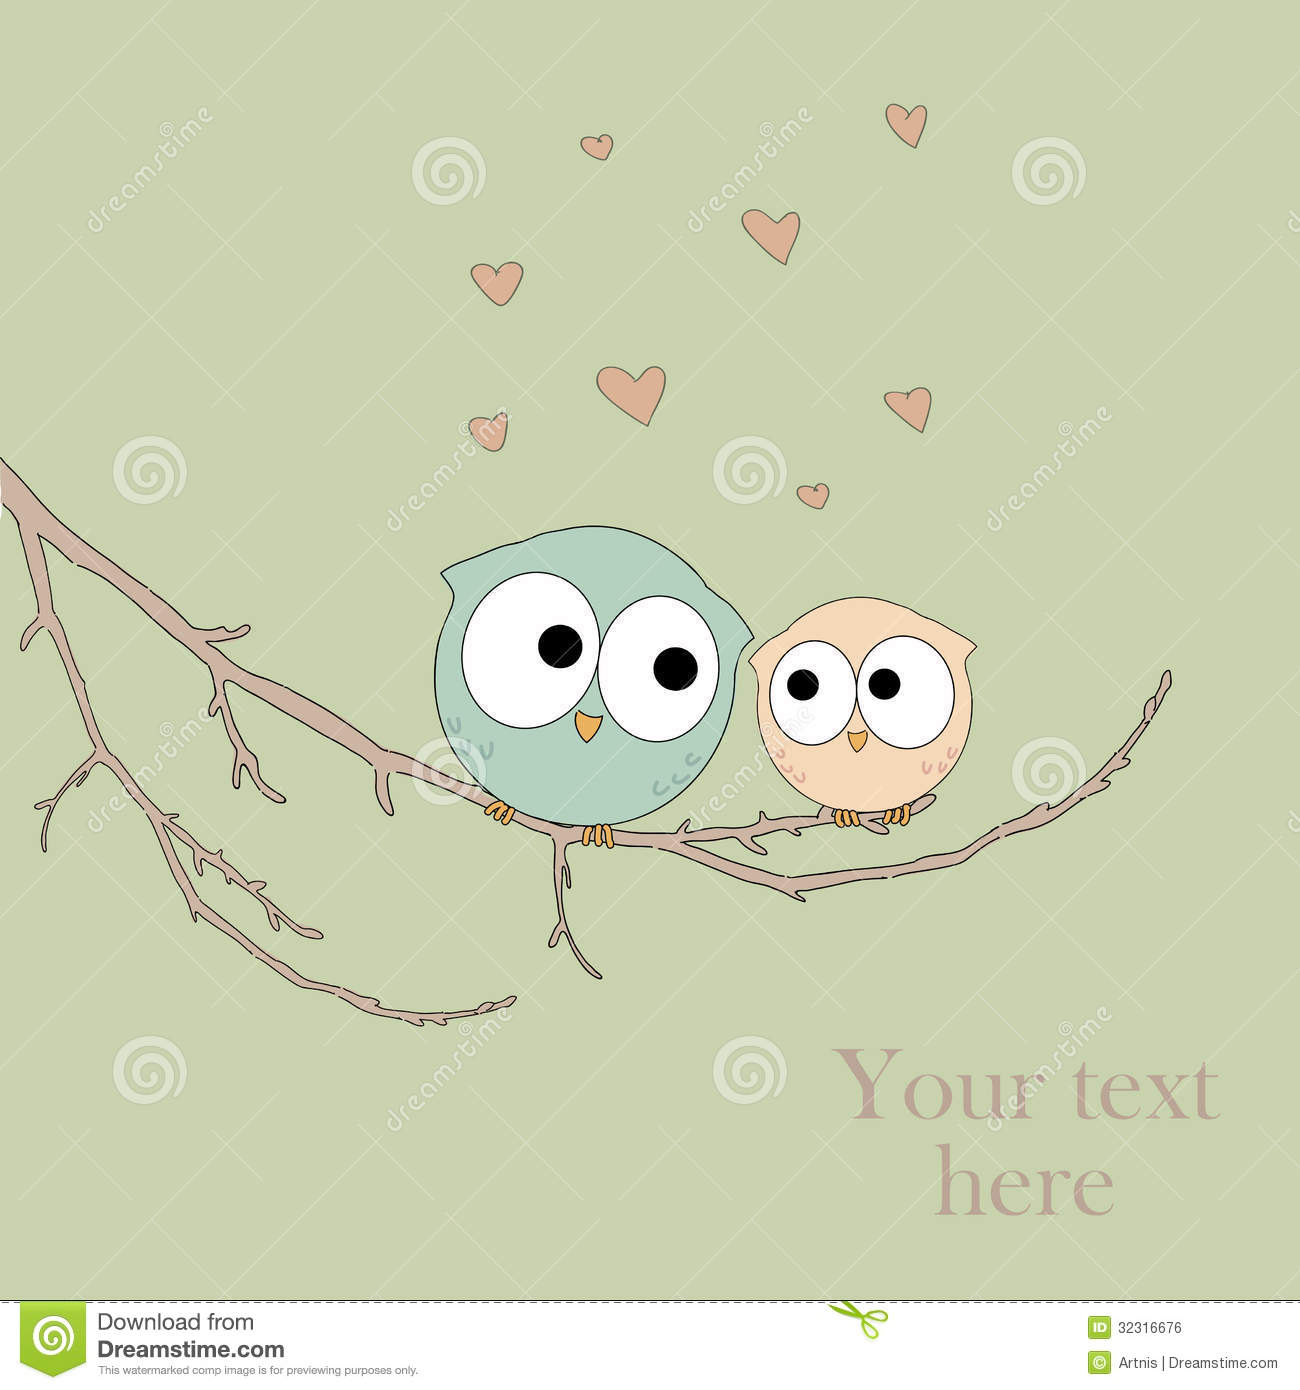 Greeting card with cute owls in love royalty free stock image image